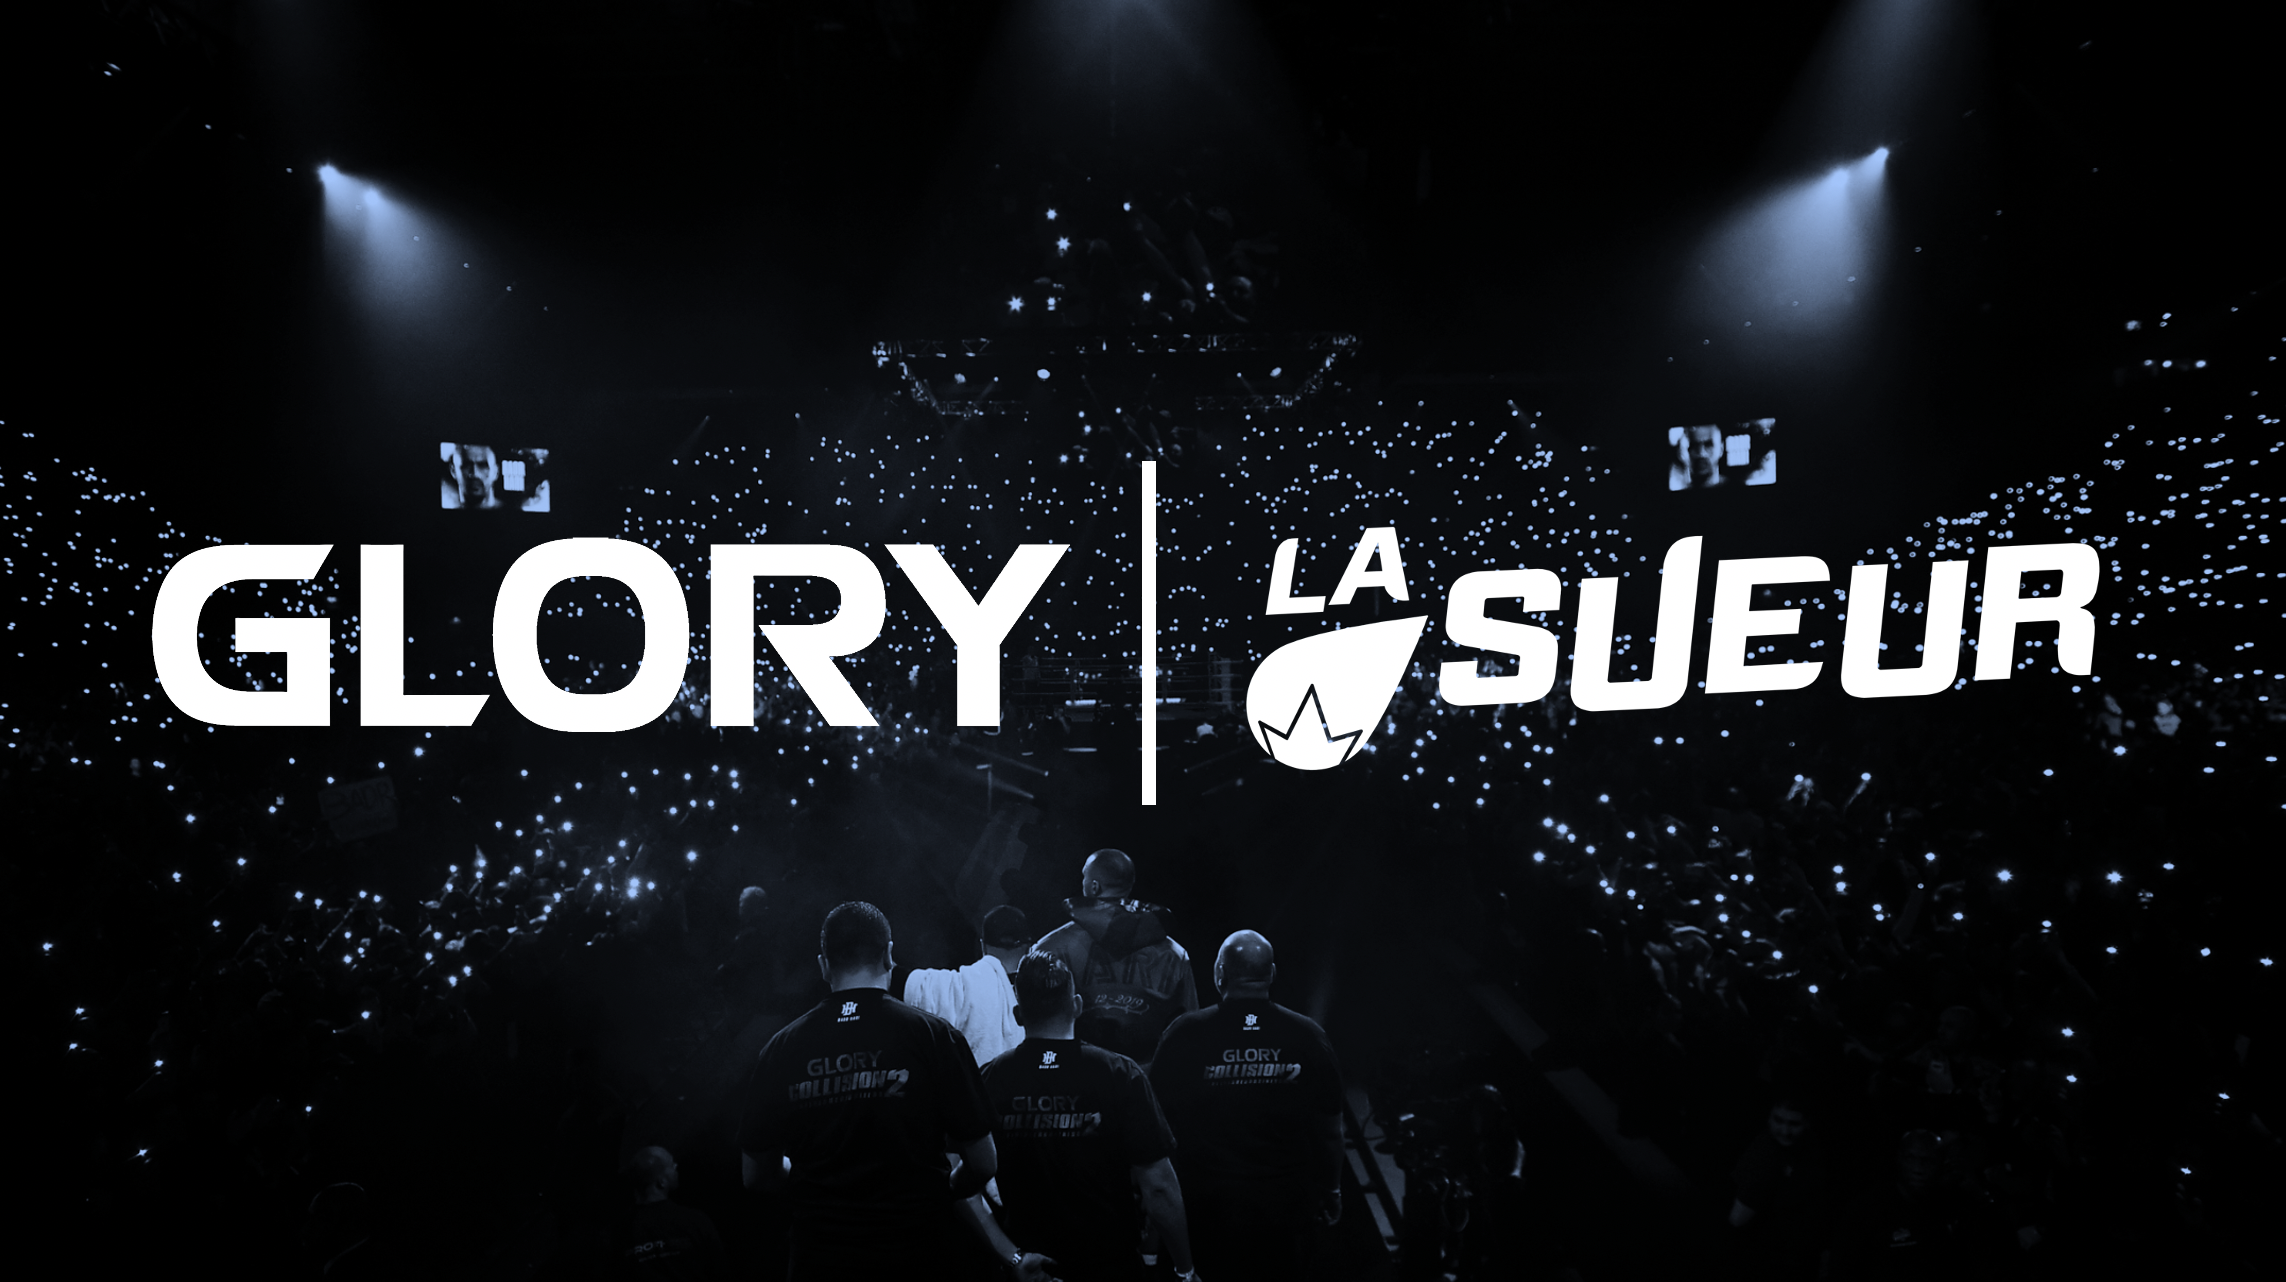 GLORY and La Sueur unveil new pay-per-view partnership in France